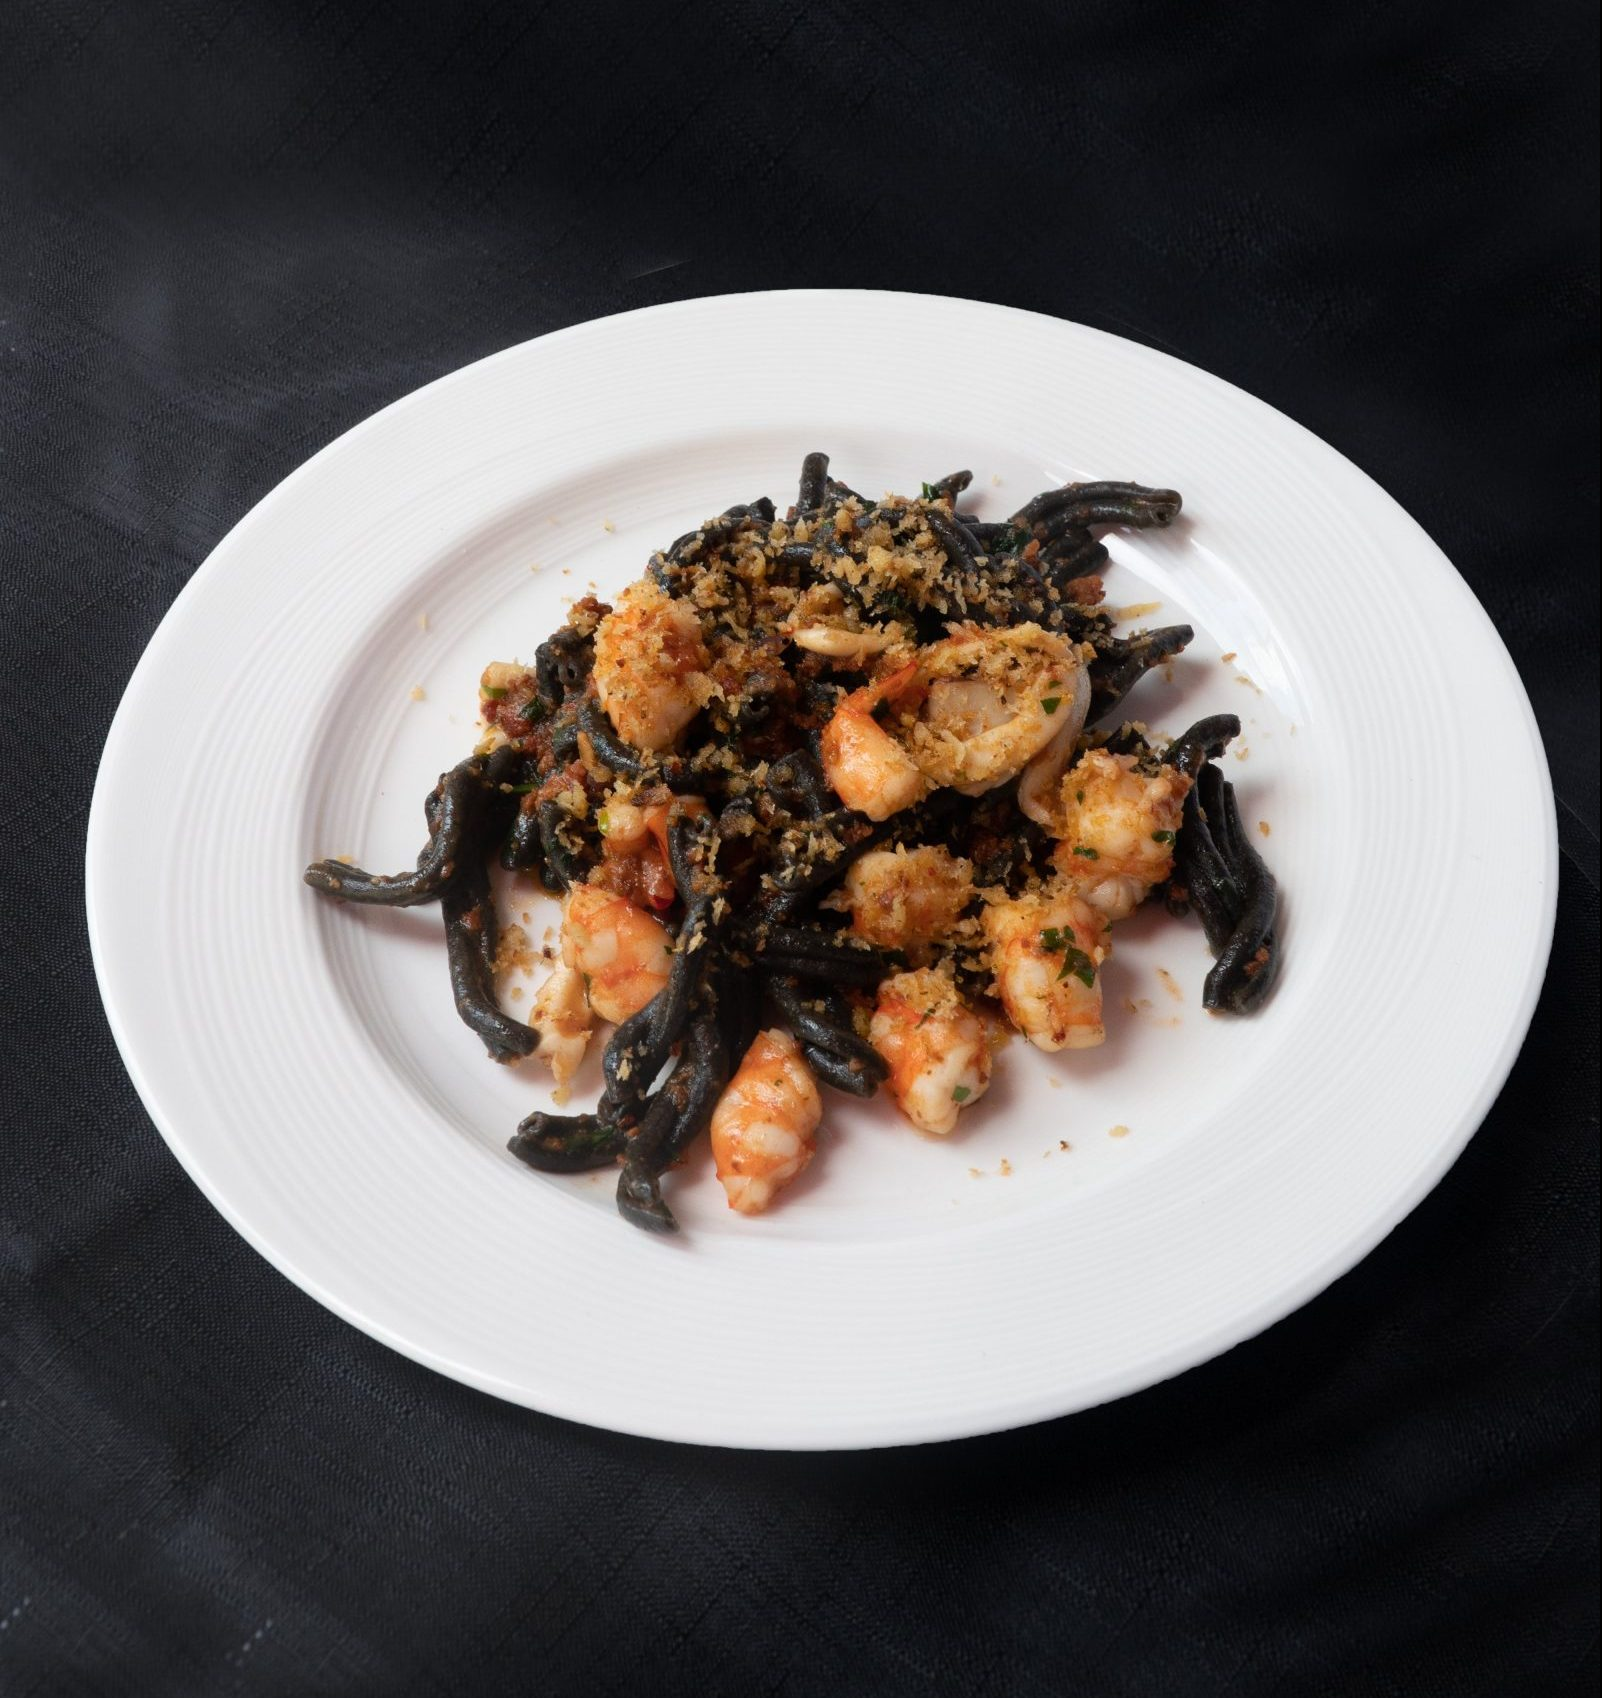 Squid ink casarecce, 'nduja, squid, fresh prawn, and toasted crumbs